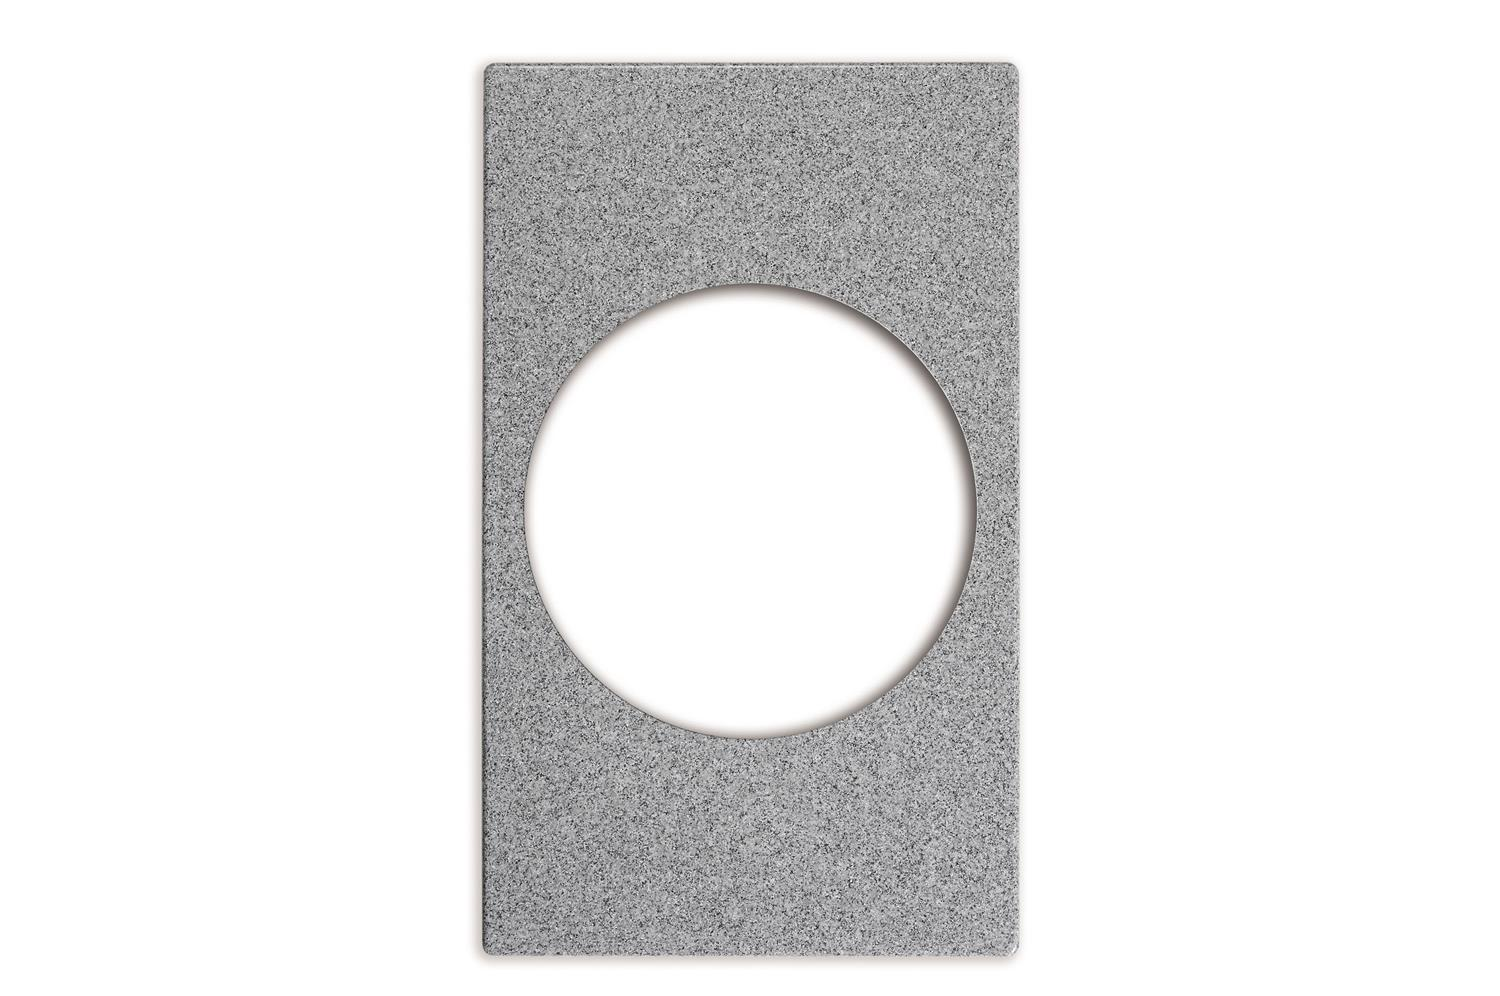 Vollrath 8243524 Miramar Single Size Template, Gray Granite